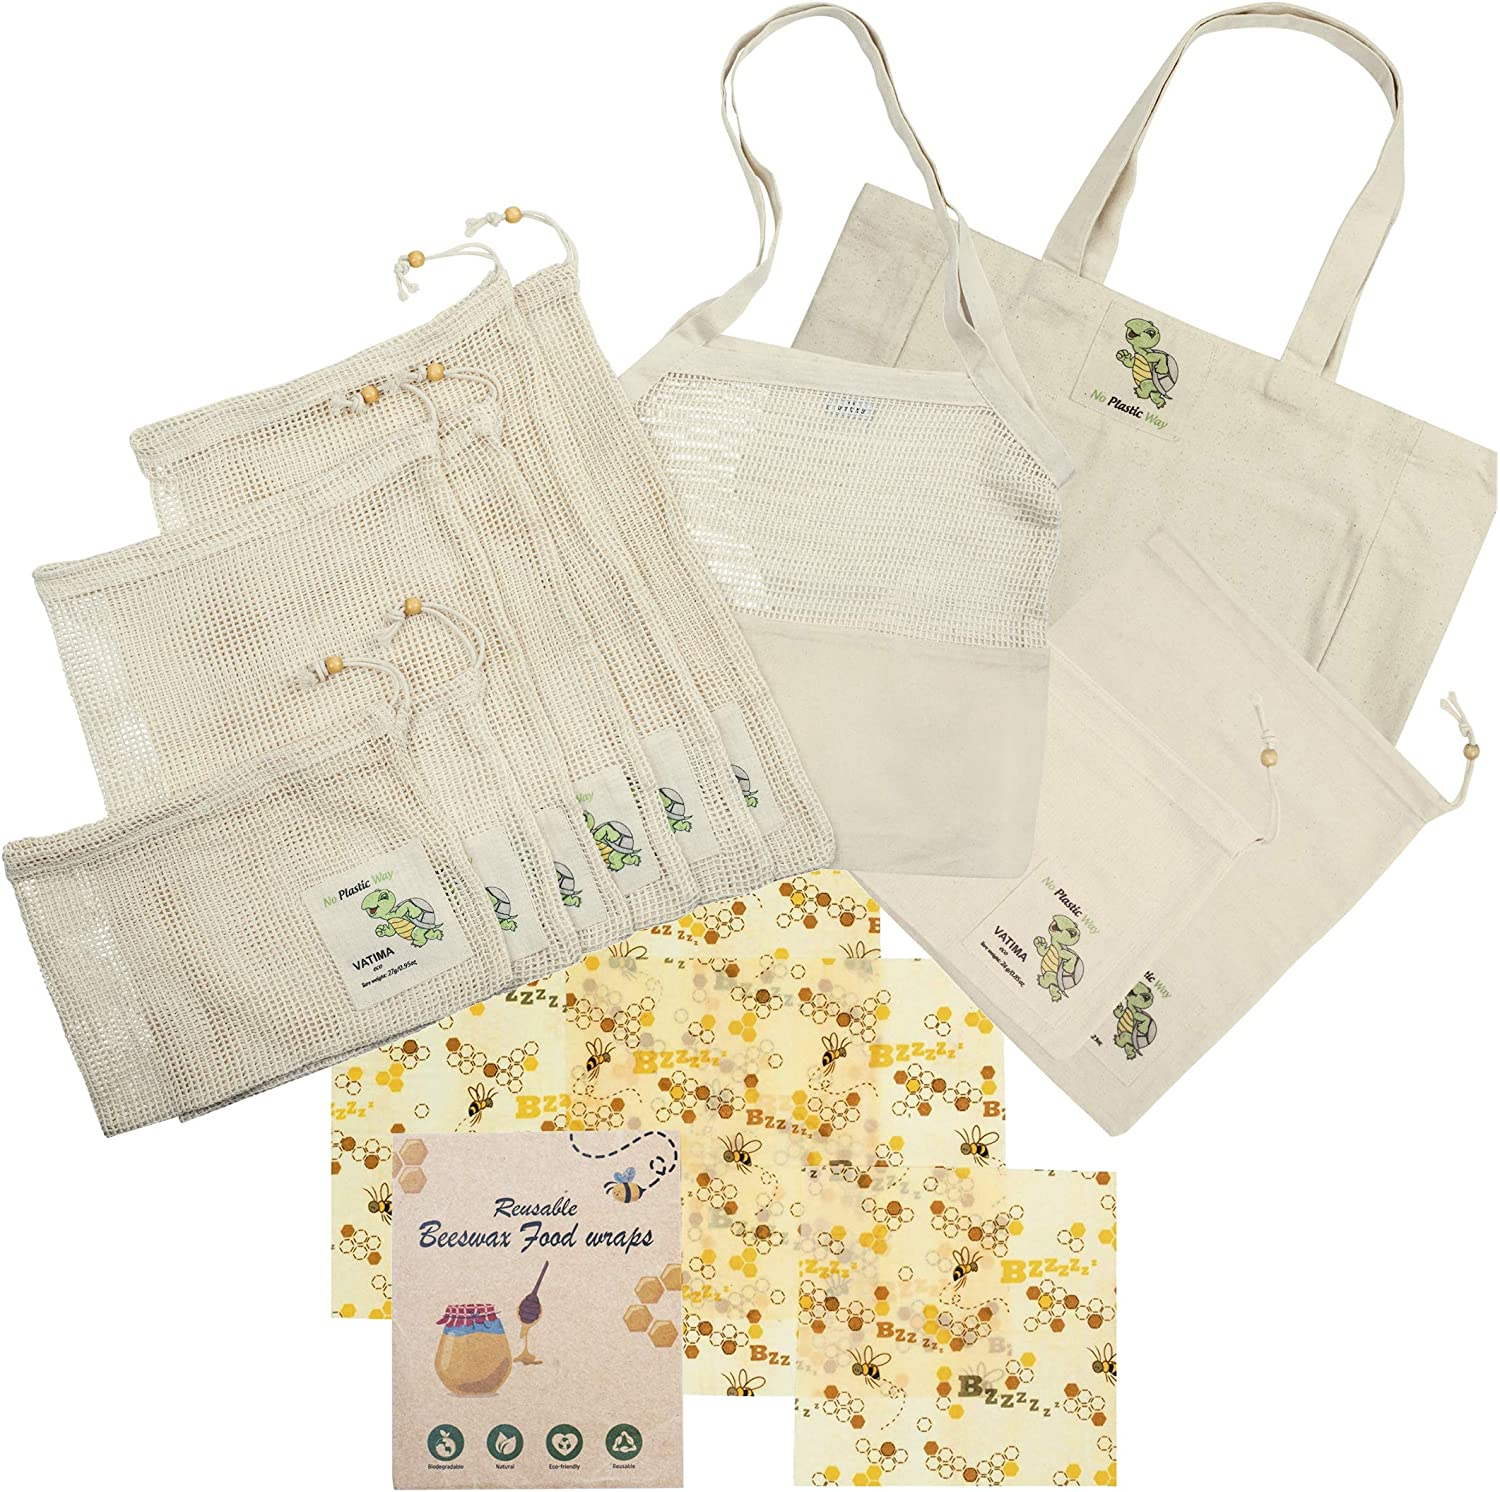 Cotton Produce Bag Reusable + Beeswax Food Wraps 13 Pack | Eco-Friendly Unbleached Washable Durable See-Through Mesh Bags + Bonus Grocery Tote Bag & French Market Bag Superior Quality Double Stitched